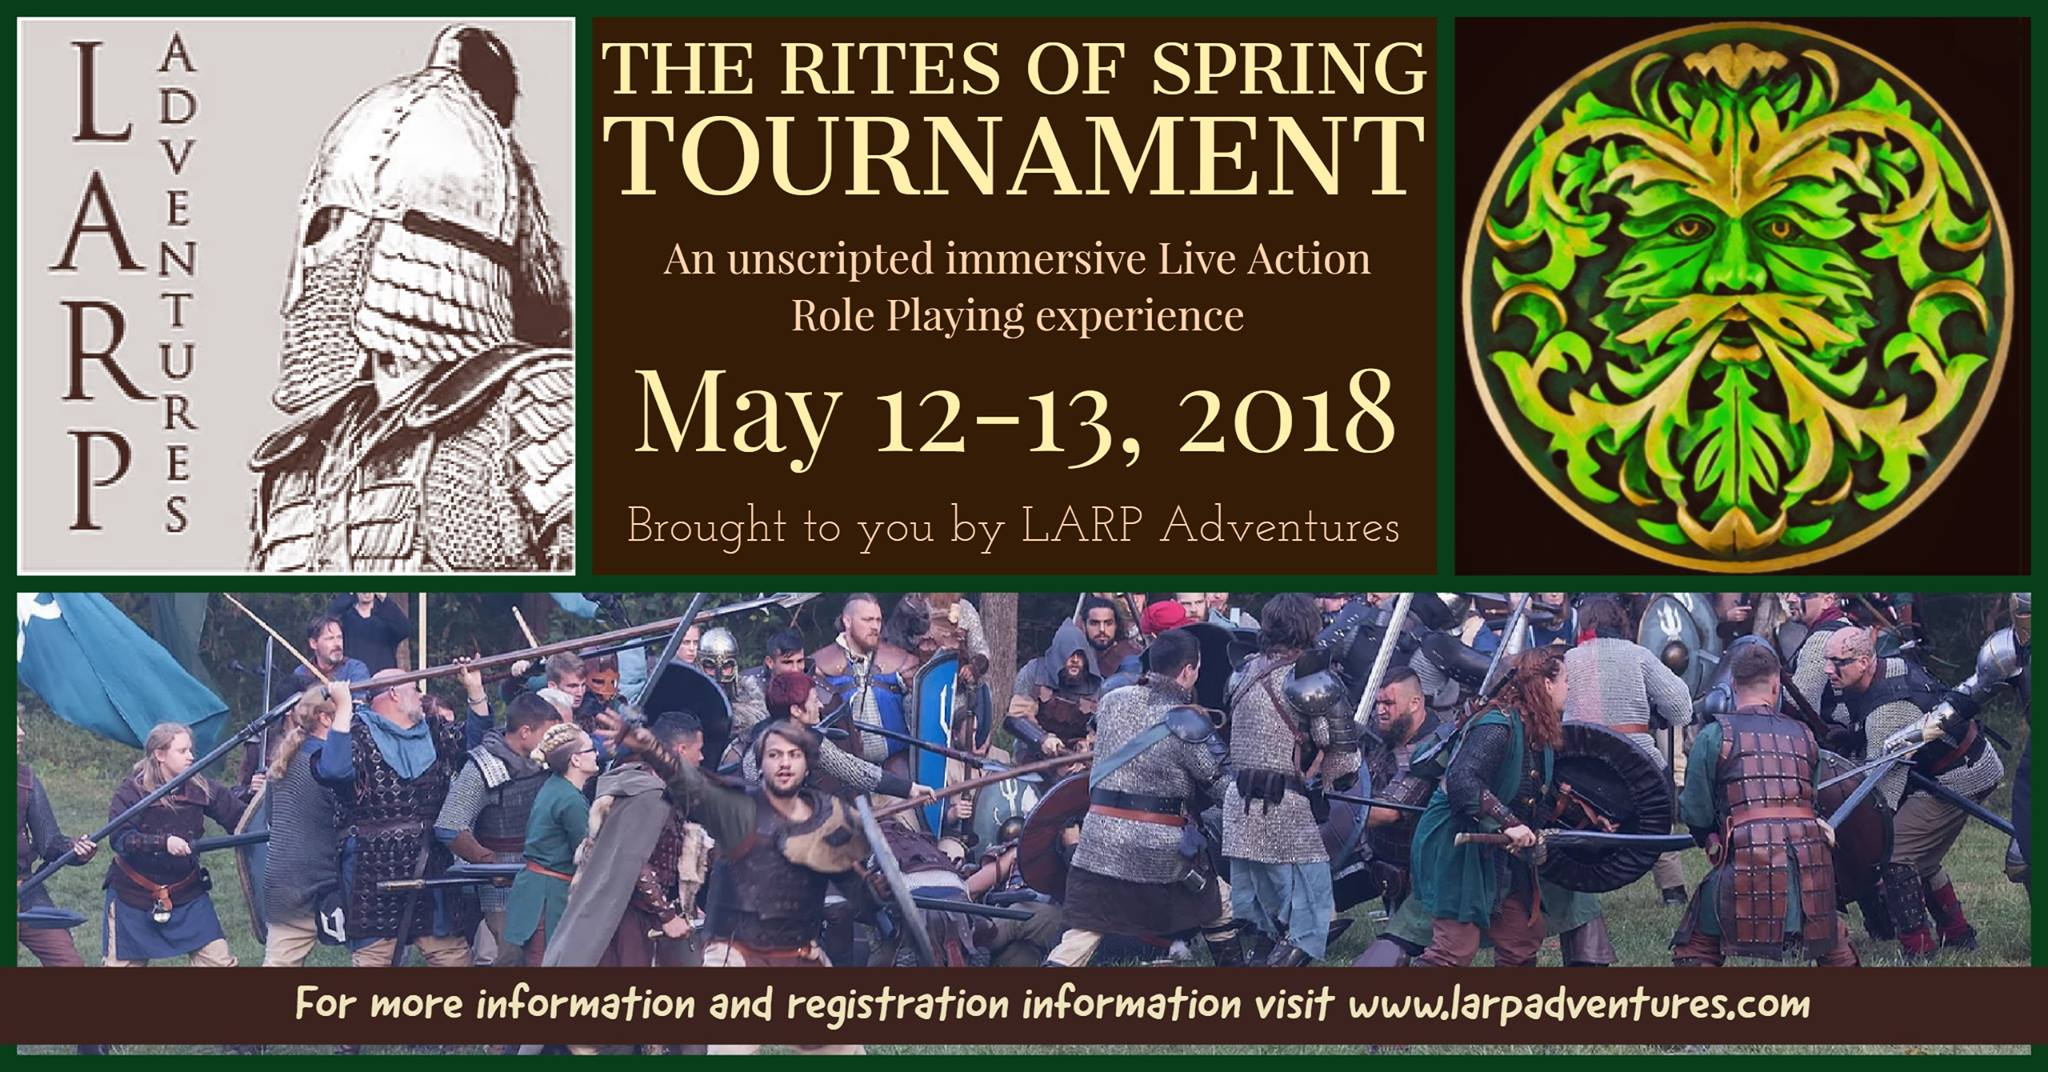 Culpeper-Culpeper-VA-Mountain-Run-Winery-Vineyard-VA-Wines-Rites-of-Spring-Warrior-LARP-Action-Role-Playing-Medieval-Times-Spring-Battles-